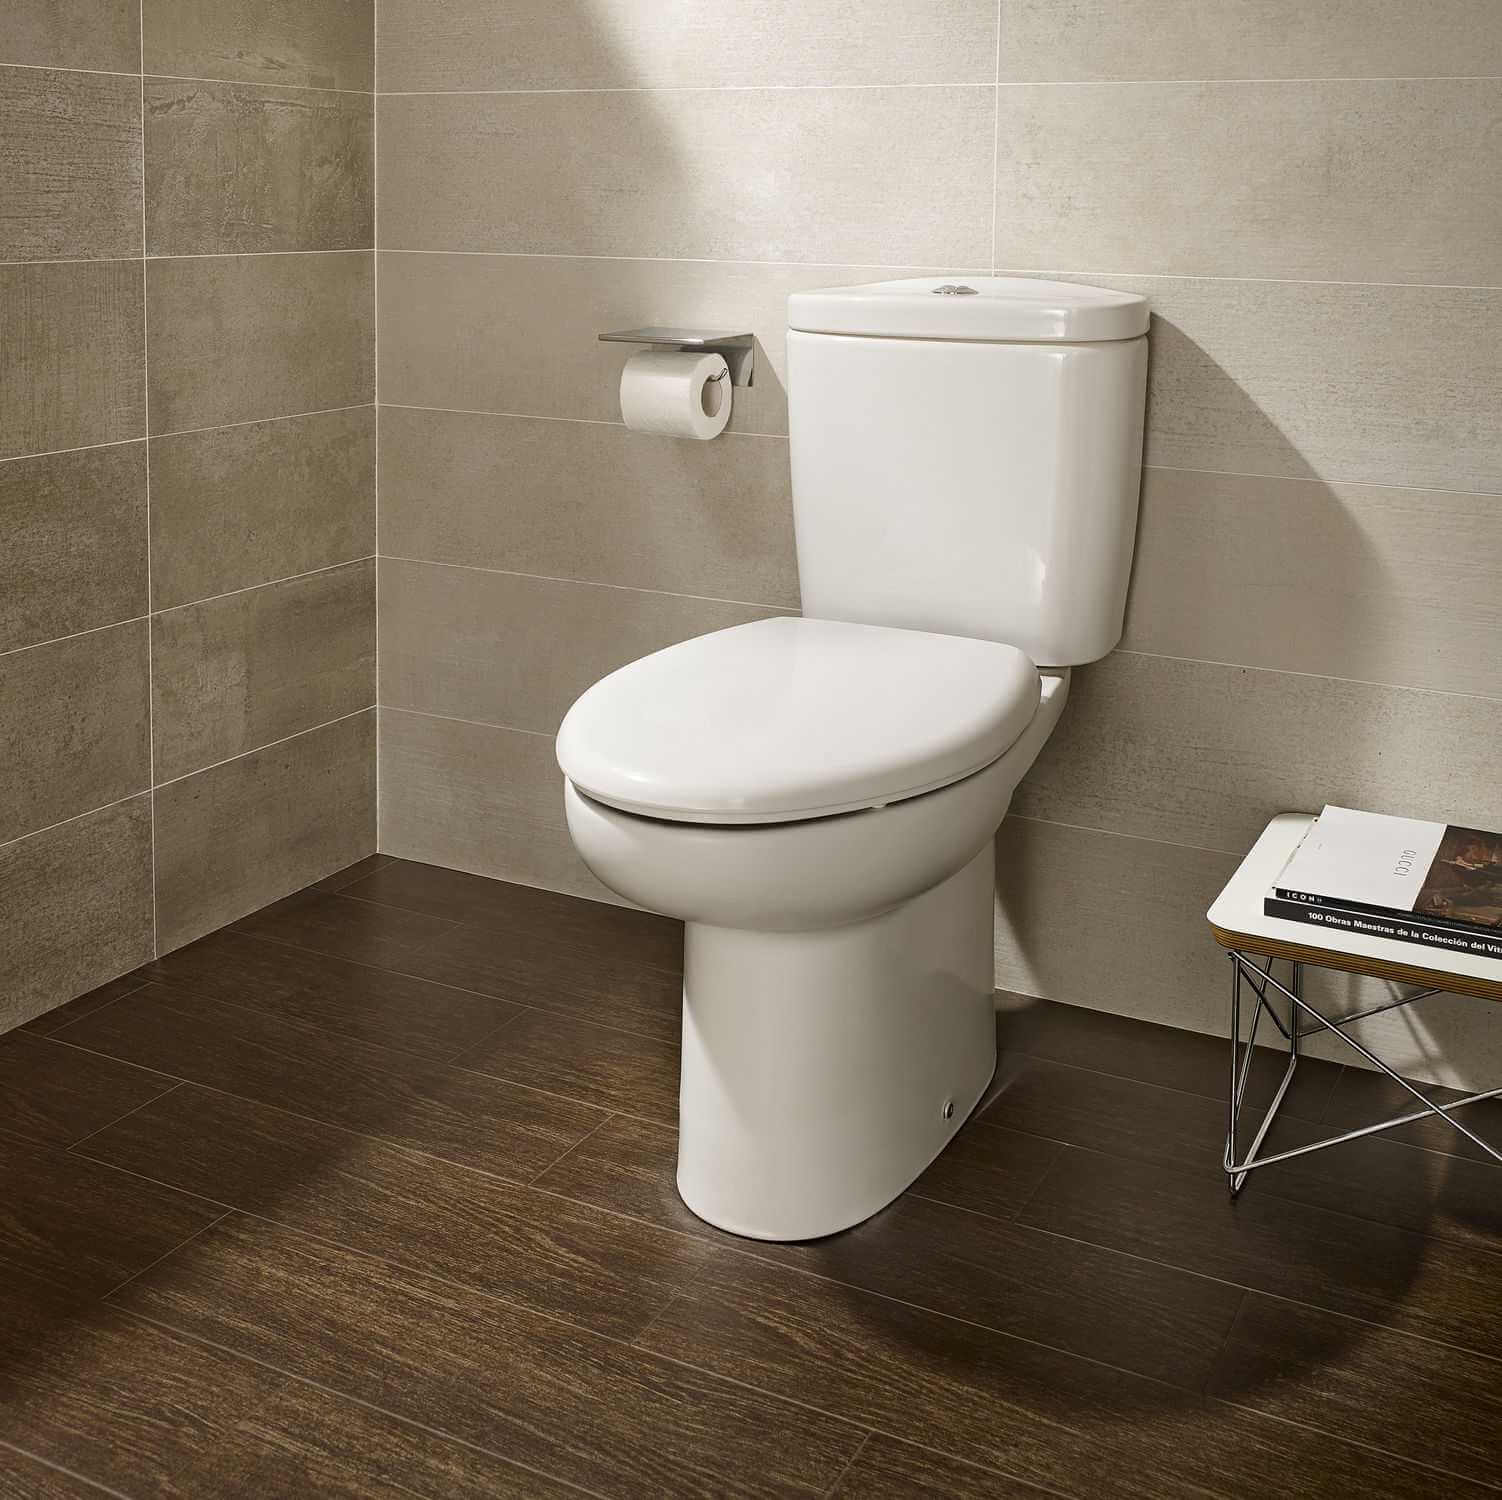 What to do if Your Toilet is Leaking Water?